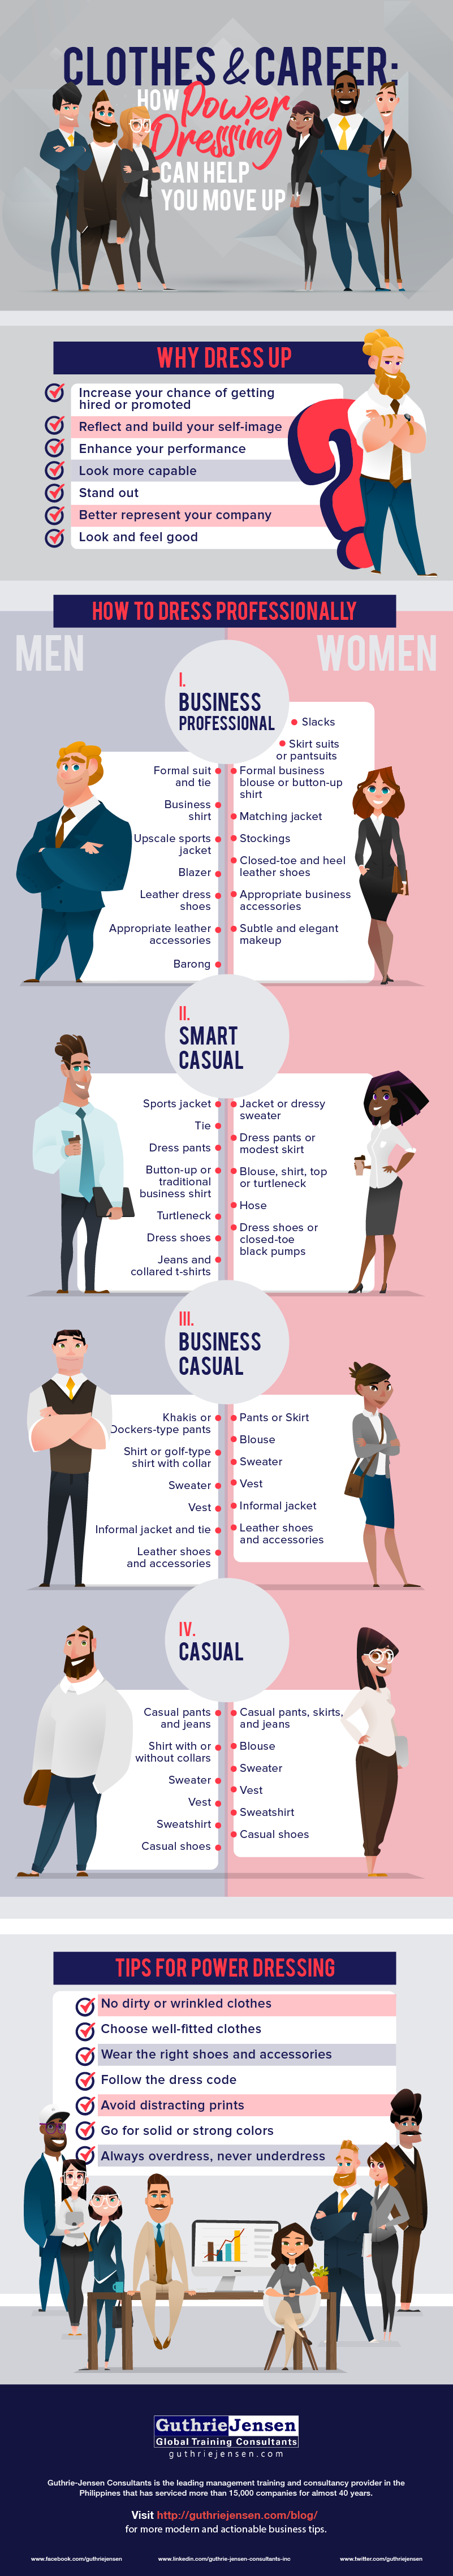 Power Dressing Tips for That All-Powerful First Impression - Infographic